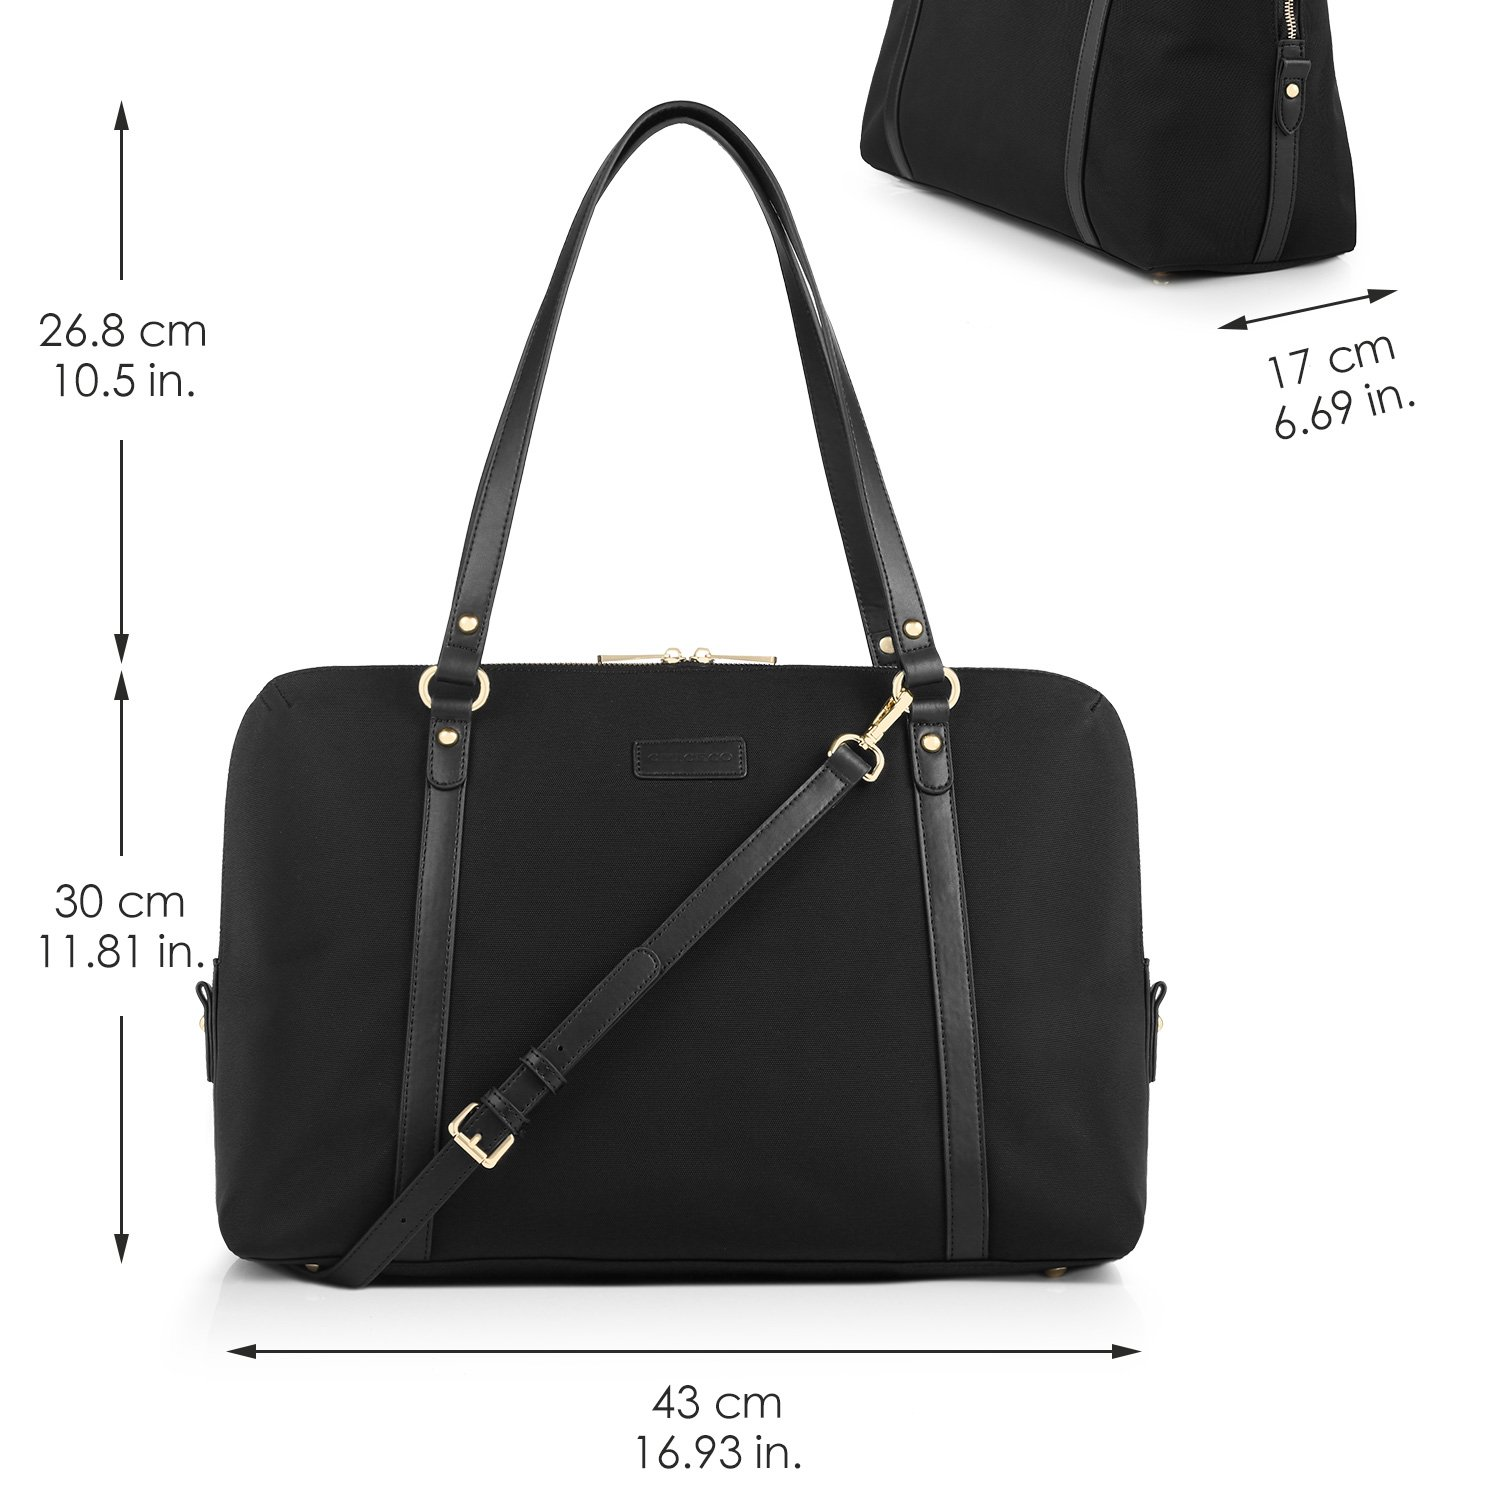 1a65b0184cc7 CHICECO Travel Tote Handbag Women s Briefcase for 15.6-Inch Laptops -  Black  Amazon.co.uk  Luggage